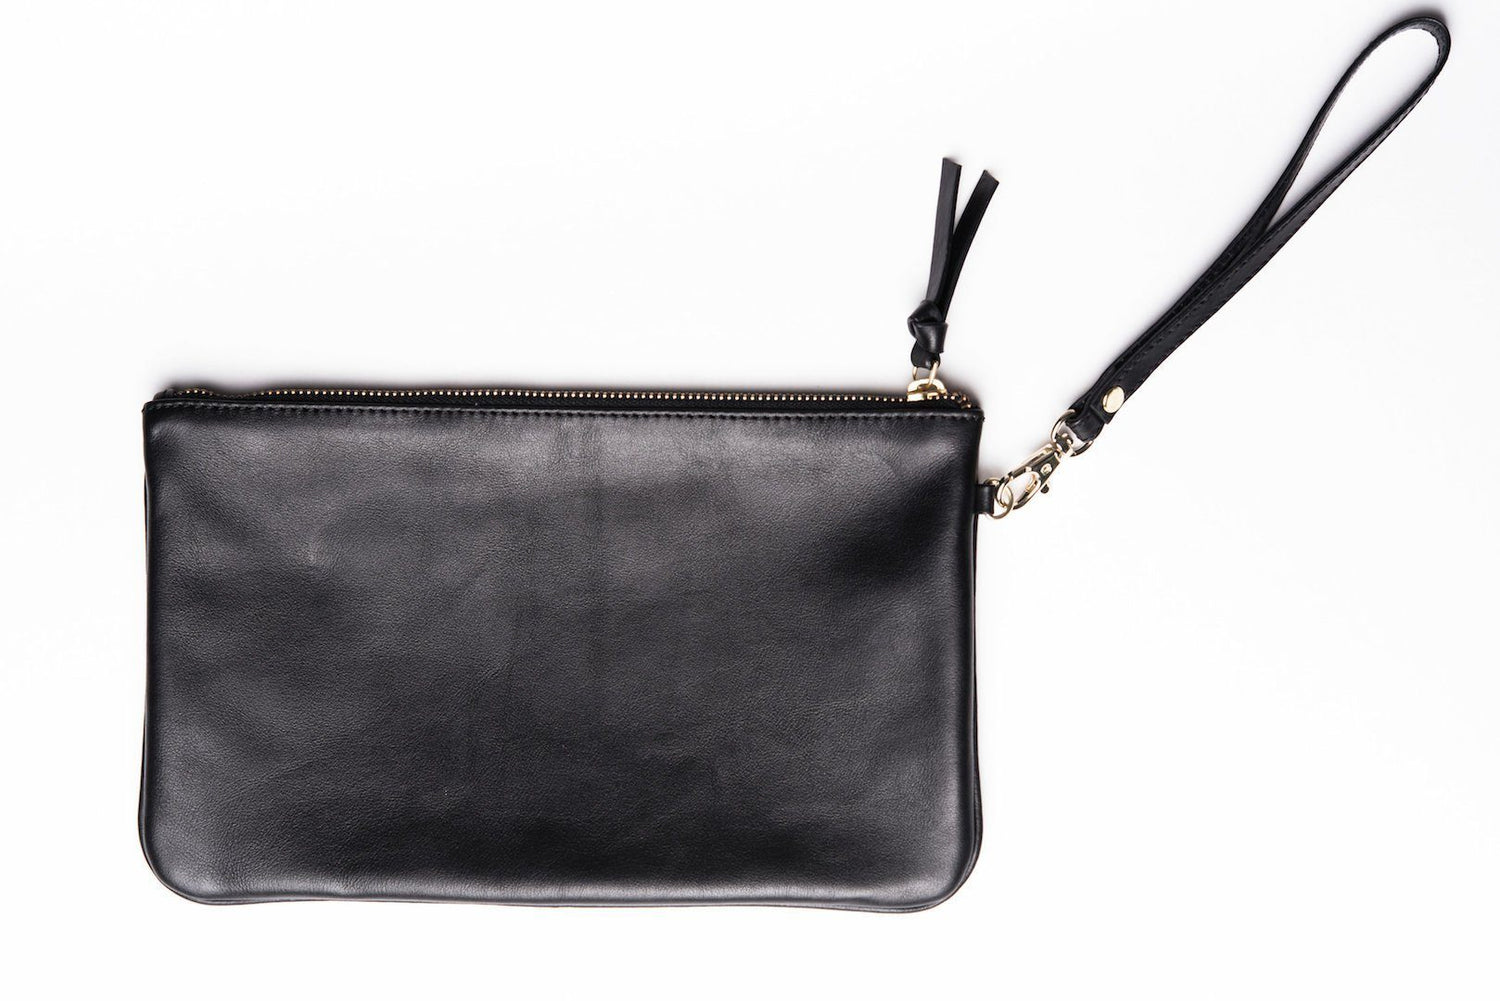 Bloom & Give Terra Wristlet Clutch - Black B&G Bags Bloom & Give